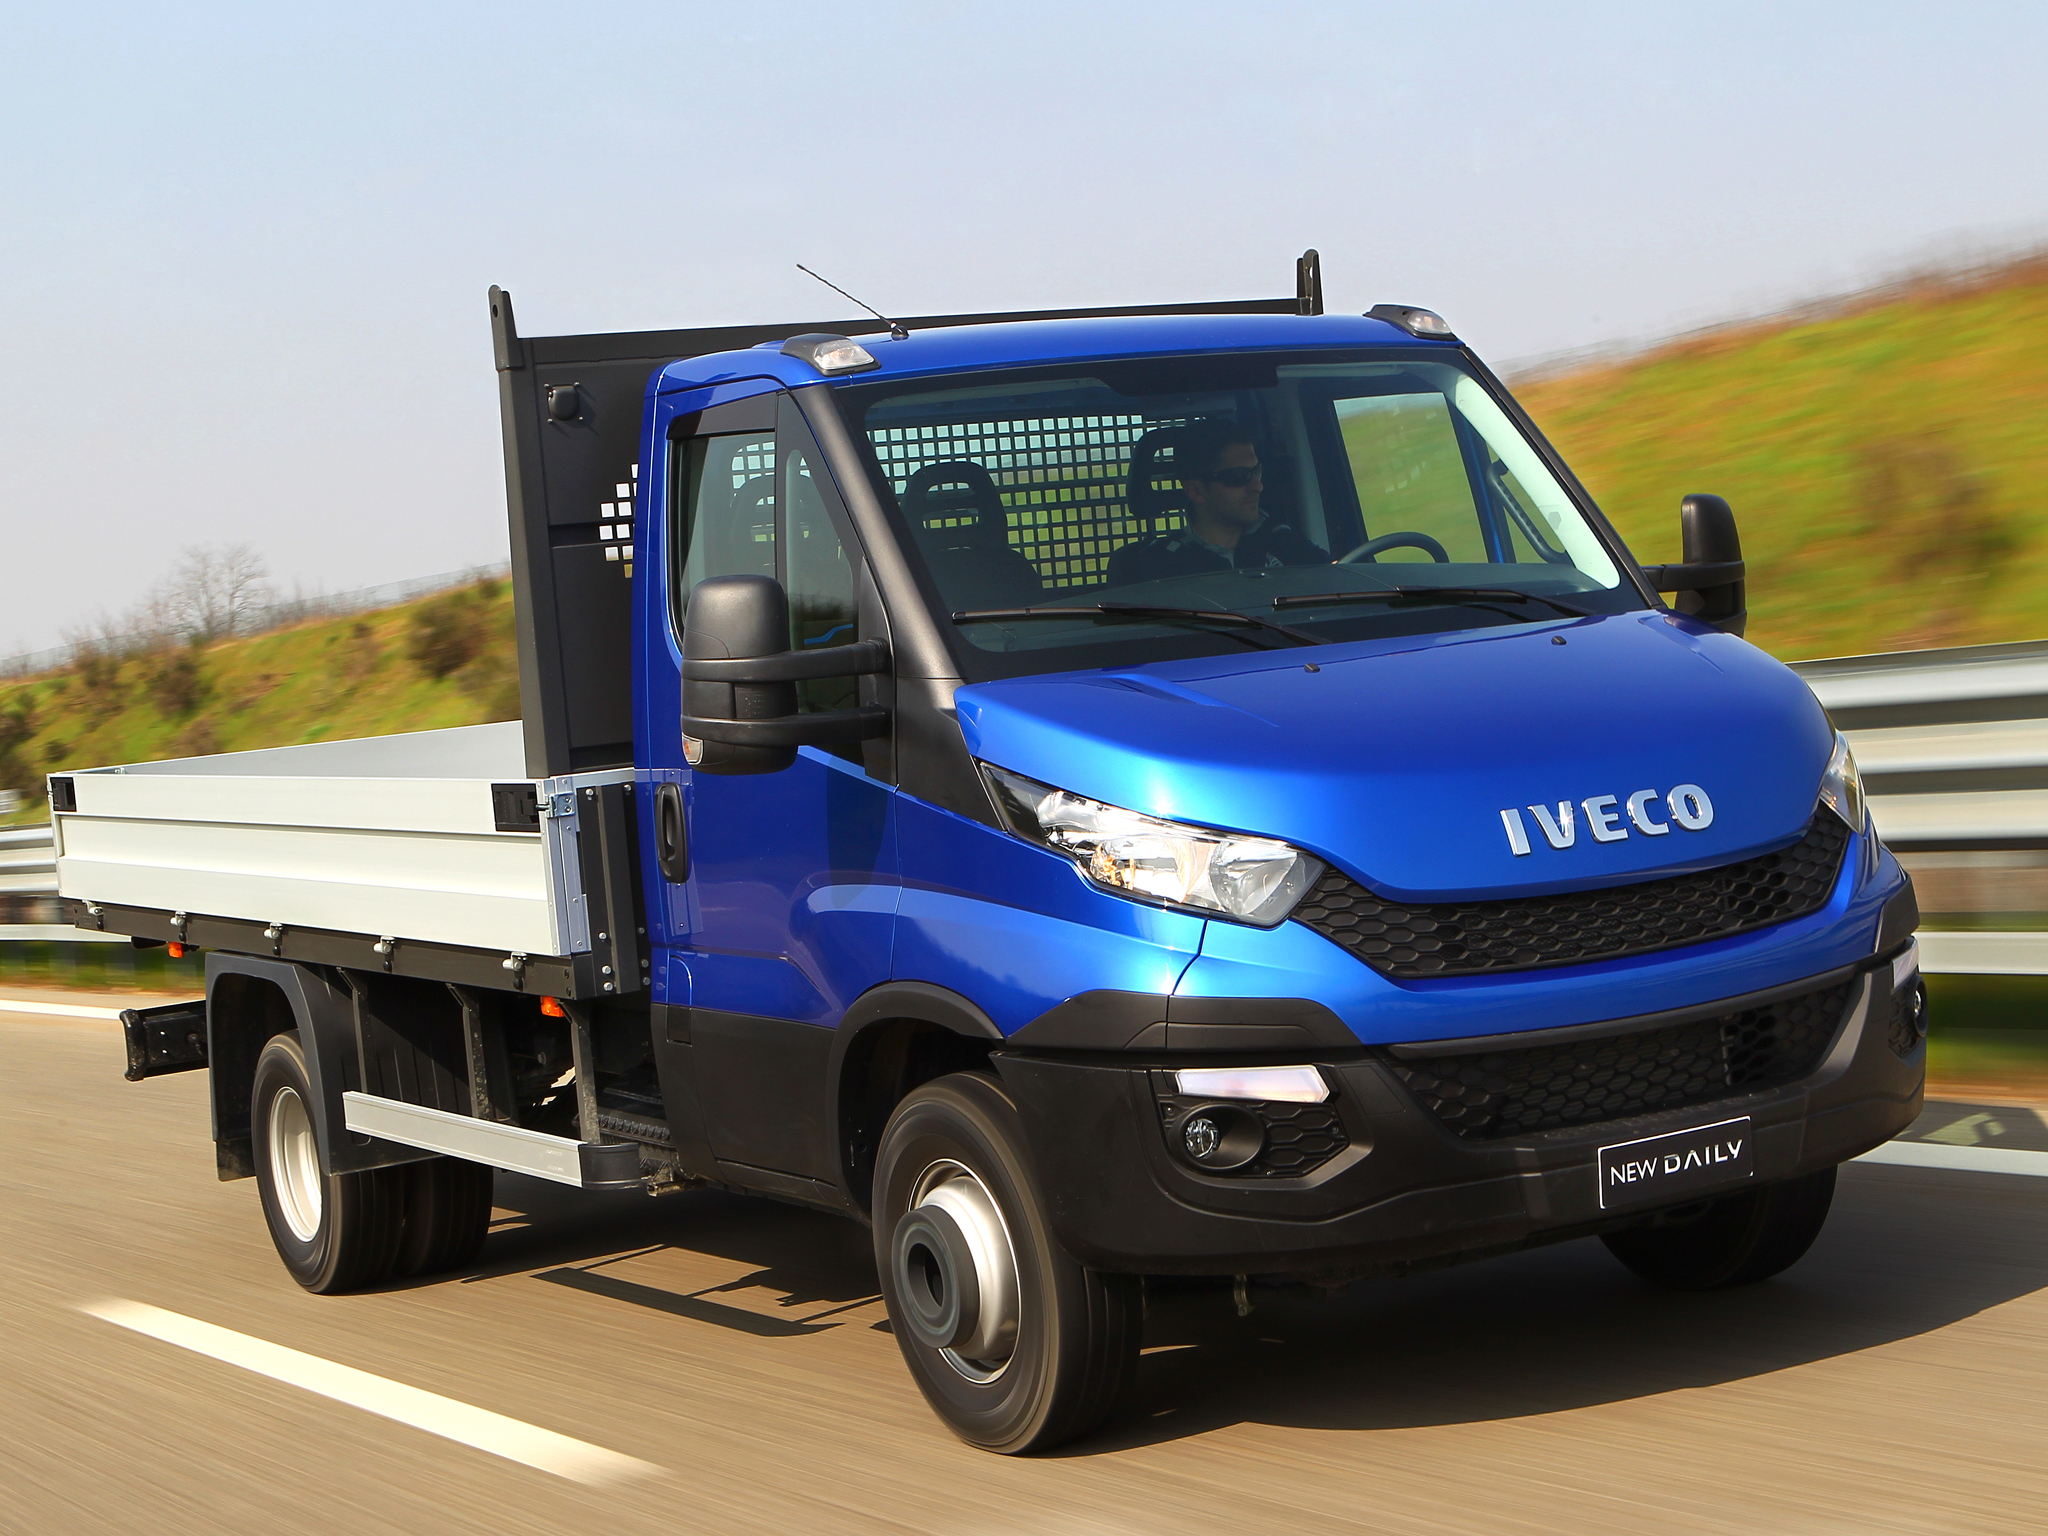 Iveco Reveals The New Daily For 2014 Say It S 80